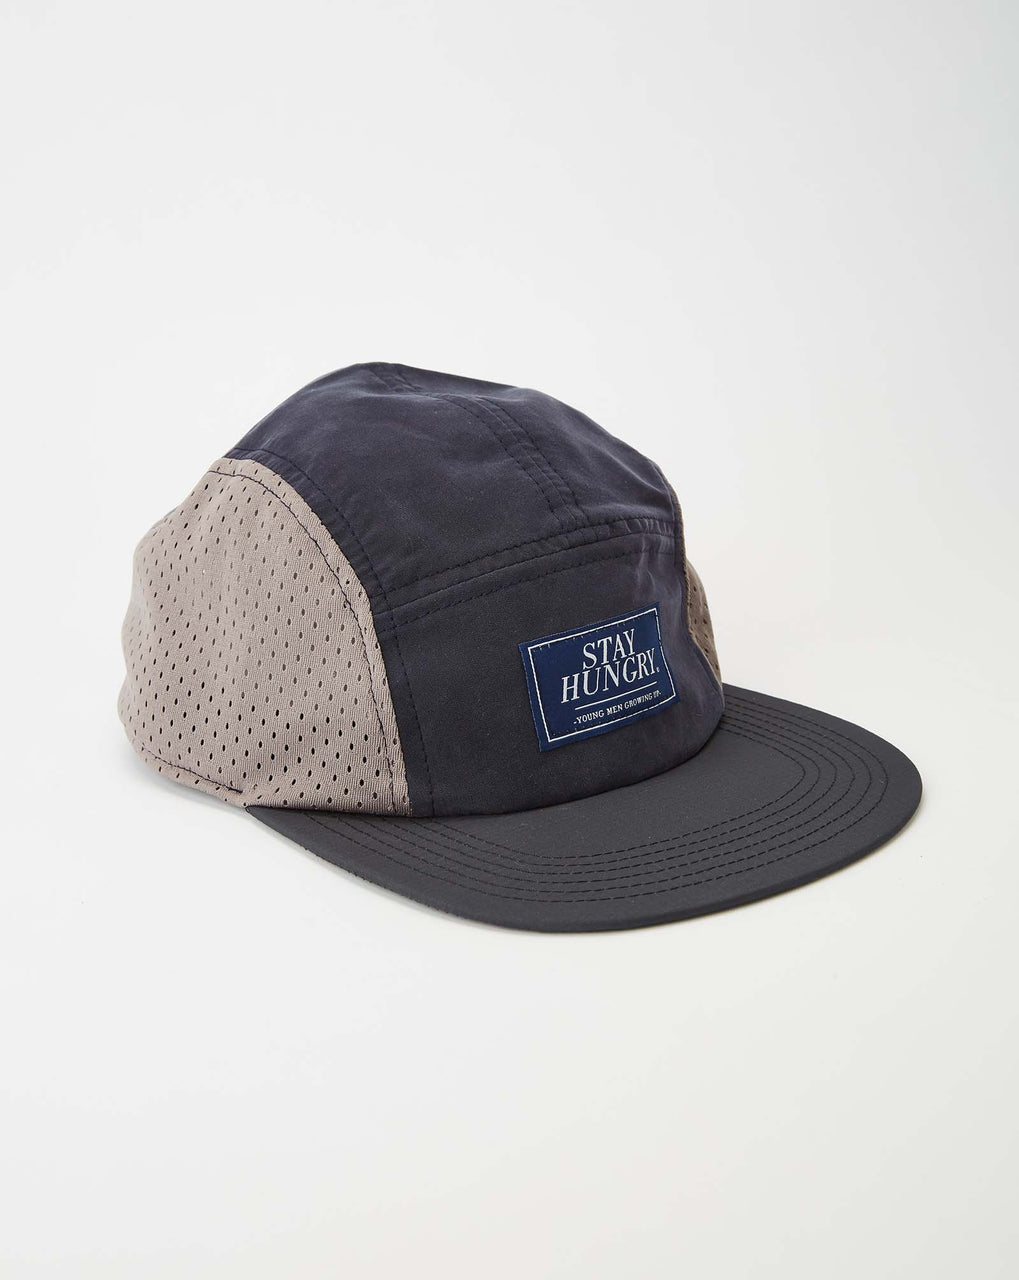 Stay Hungry Blue Label Mesh 5 Panel Cap (Blue/ Grey/ Blue)